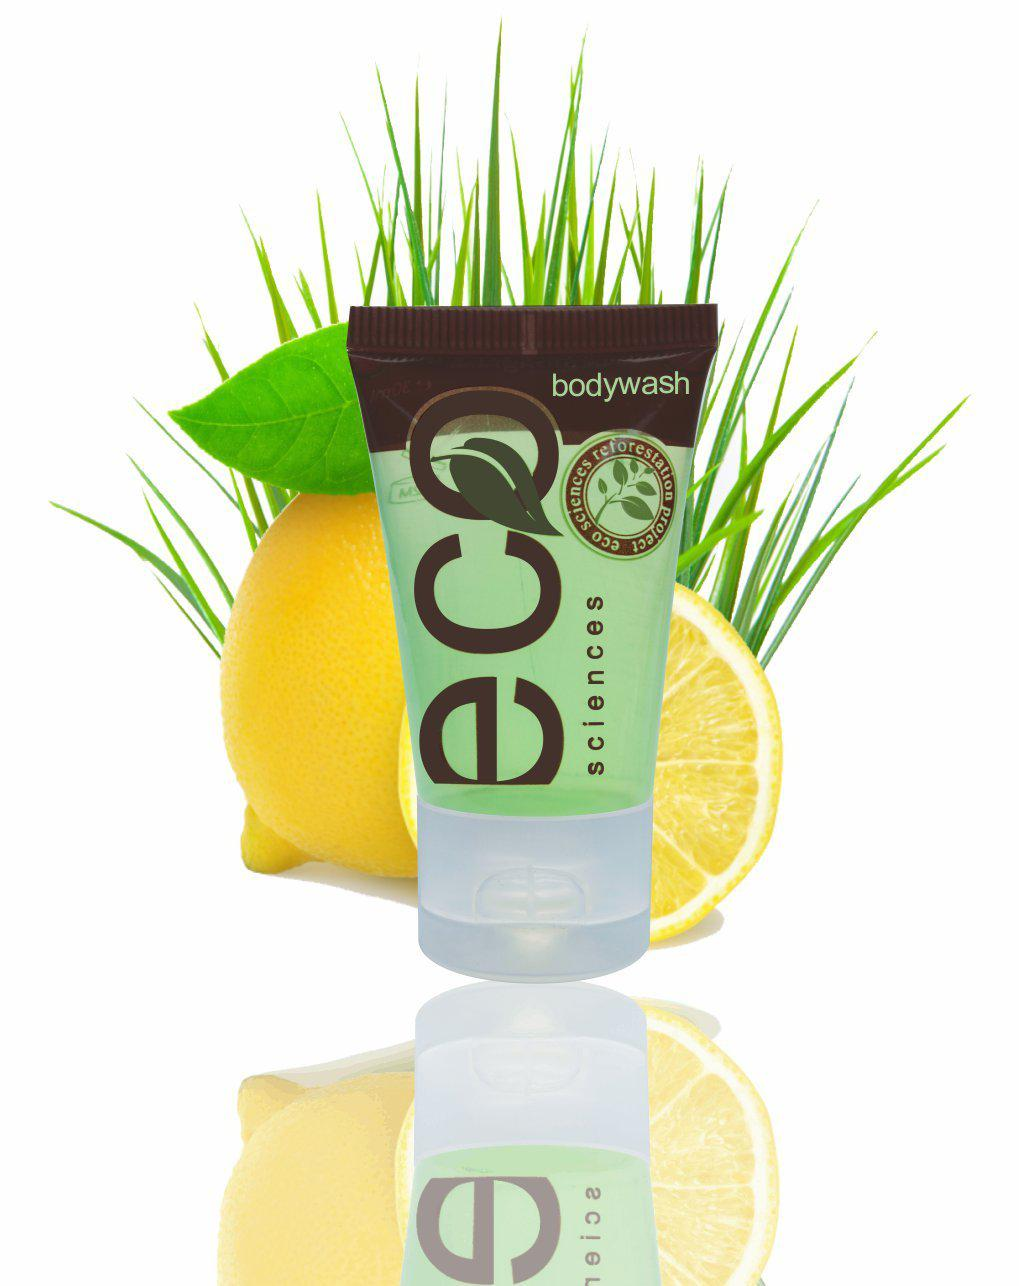 Hotel Body Wash ECO Sciences 30ml (100 per case) As low as 31¢ each! - Canadian Hotel Supplies